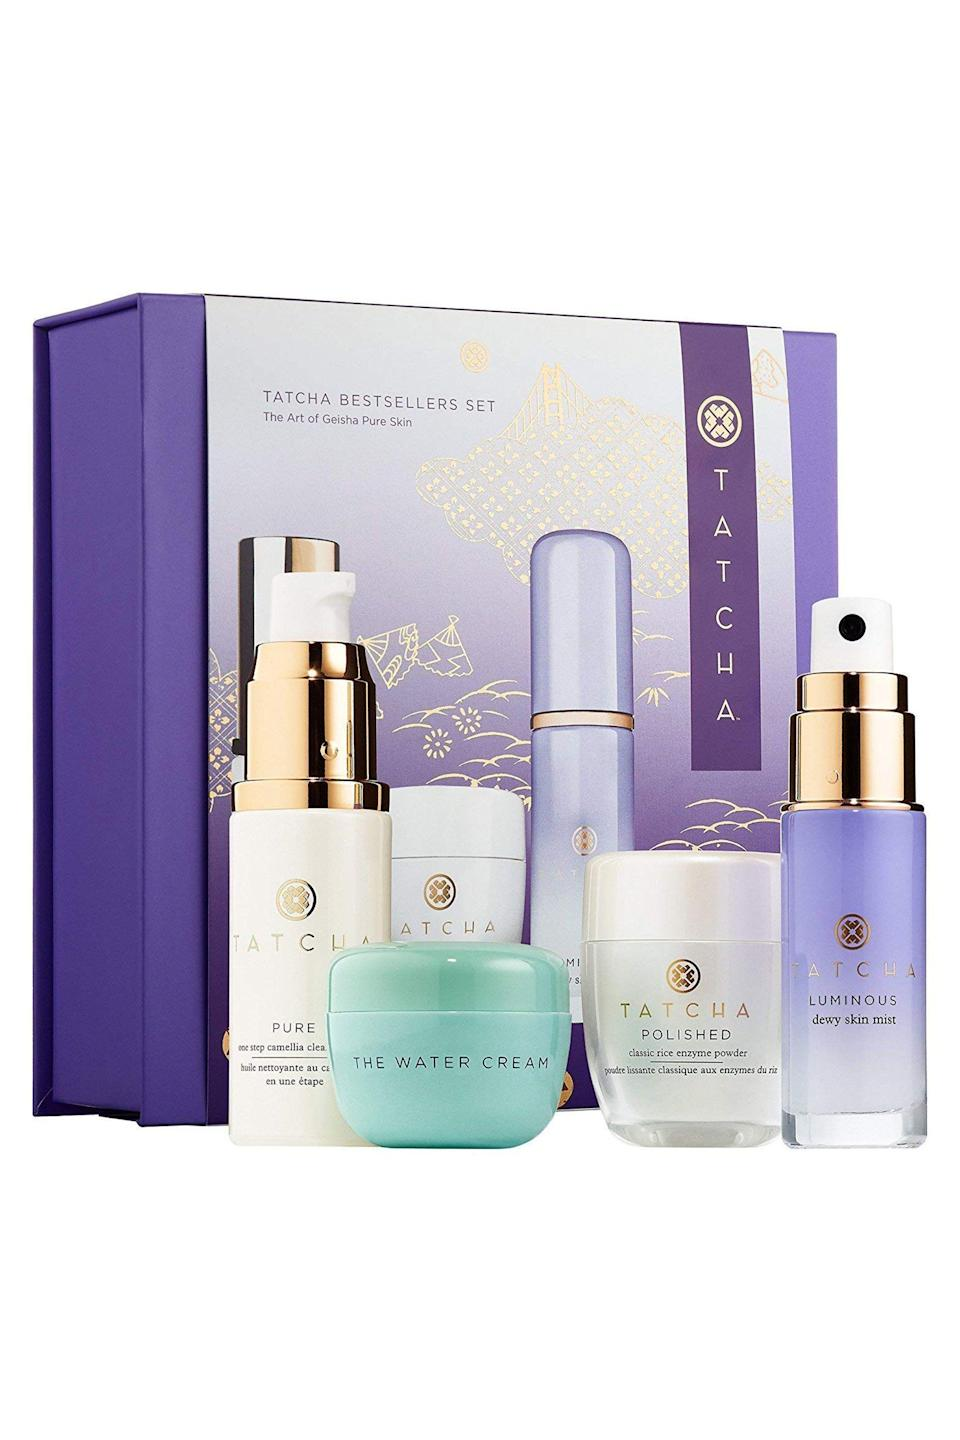 """<p><strong>Tatcha</strong></p><p>sephora.com</p><p><strong>$60.00</strong></p><p><a href=""""https://go.redirectingat.com?id=74968X1596630&url=https%3A%2F%2Fwww.sephora.com%2Fproduct%2Ftatcha-bestsellers-set-P450961&sref=https%3A%2F%2Fwww.elle.com%2Fbeauty%2Fmakeup-skin-care%2Fg33433197%2Fbest-skin-care-sets%2F"""" rel=""""nofollow noopener"""" target=""""_blank"""" data-ylk=""""slk:Shop Now"""" class=""""link rapid-noclick-resp"""">Shop Now</a></p><p>Traveling to Japan might not be in this year's cards but Tatcha's Bestsellers Set brings you pretty close to the country's culture. Inspired by Japanese beauty culture, each product is crafted from Japanese anti-aging superfoods like green tea, algae, and rice.</p>"""